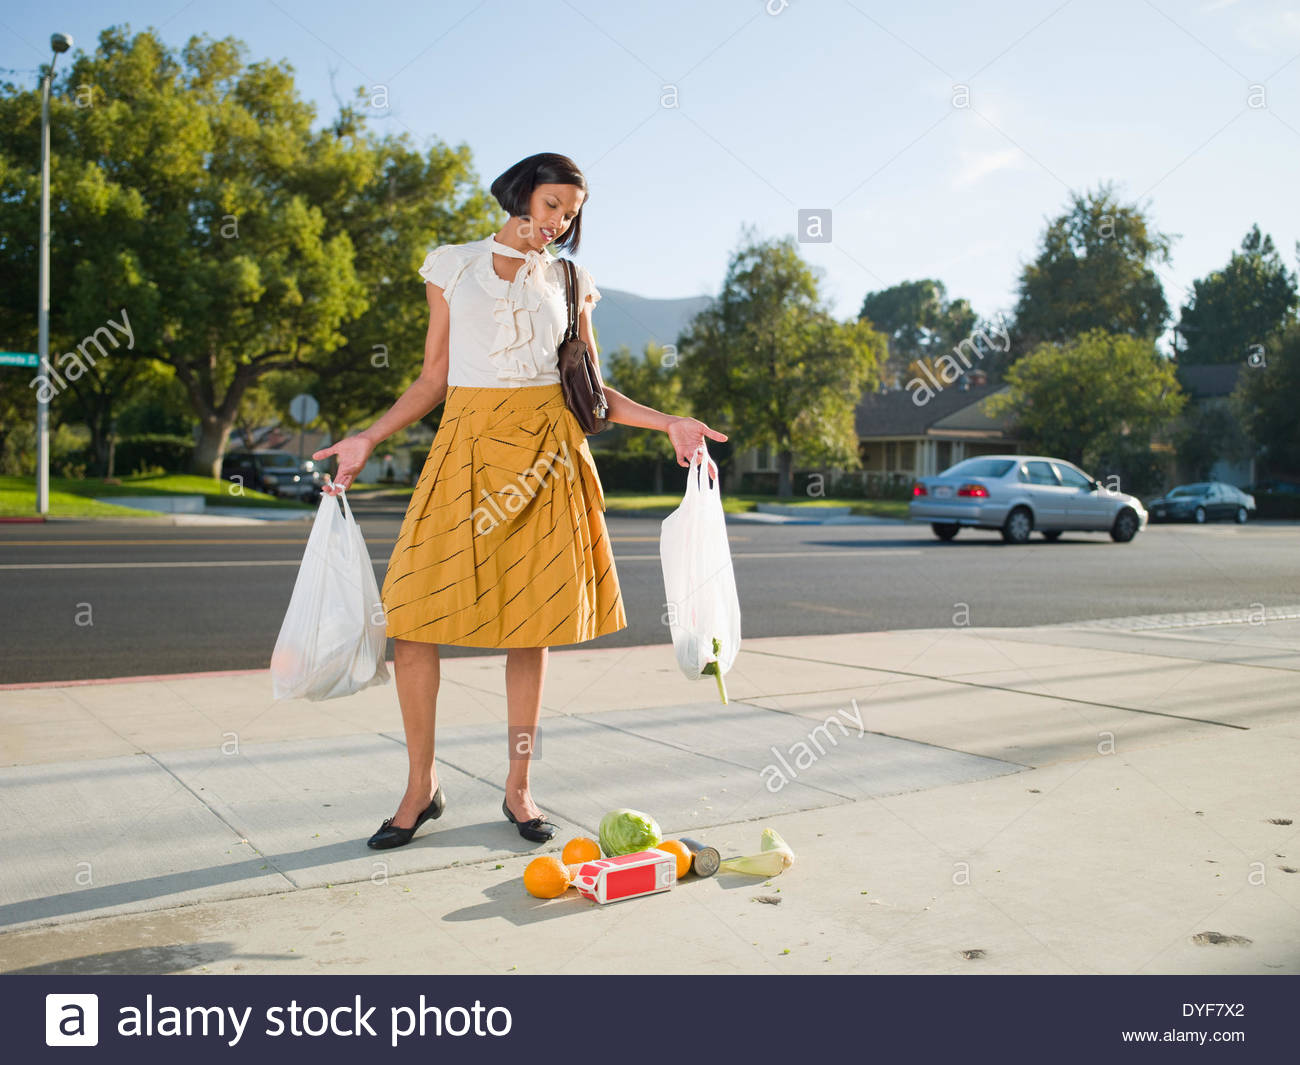 Frustrated woman dropping groceries on sidewalk - Stock Image